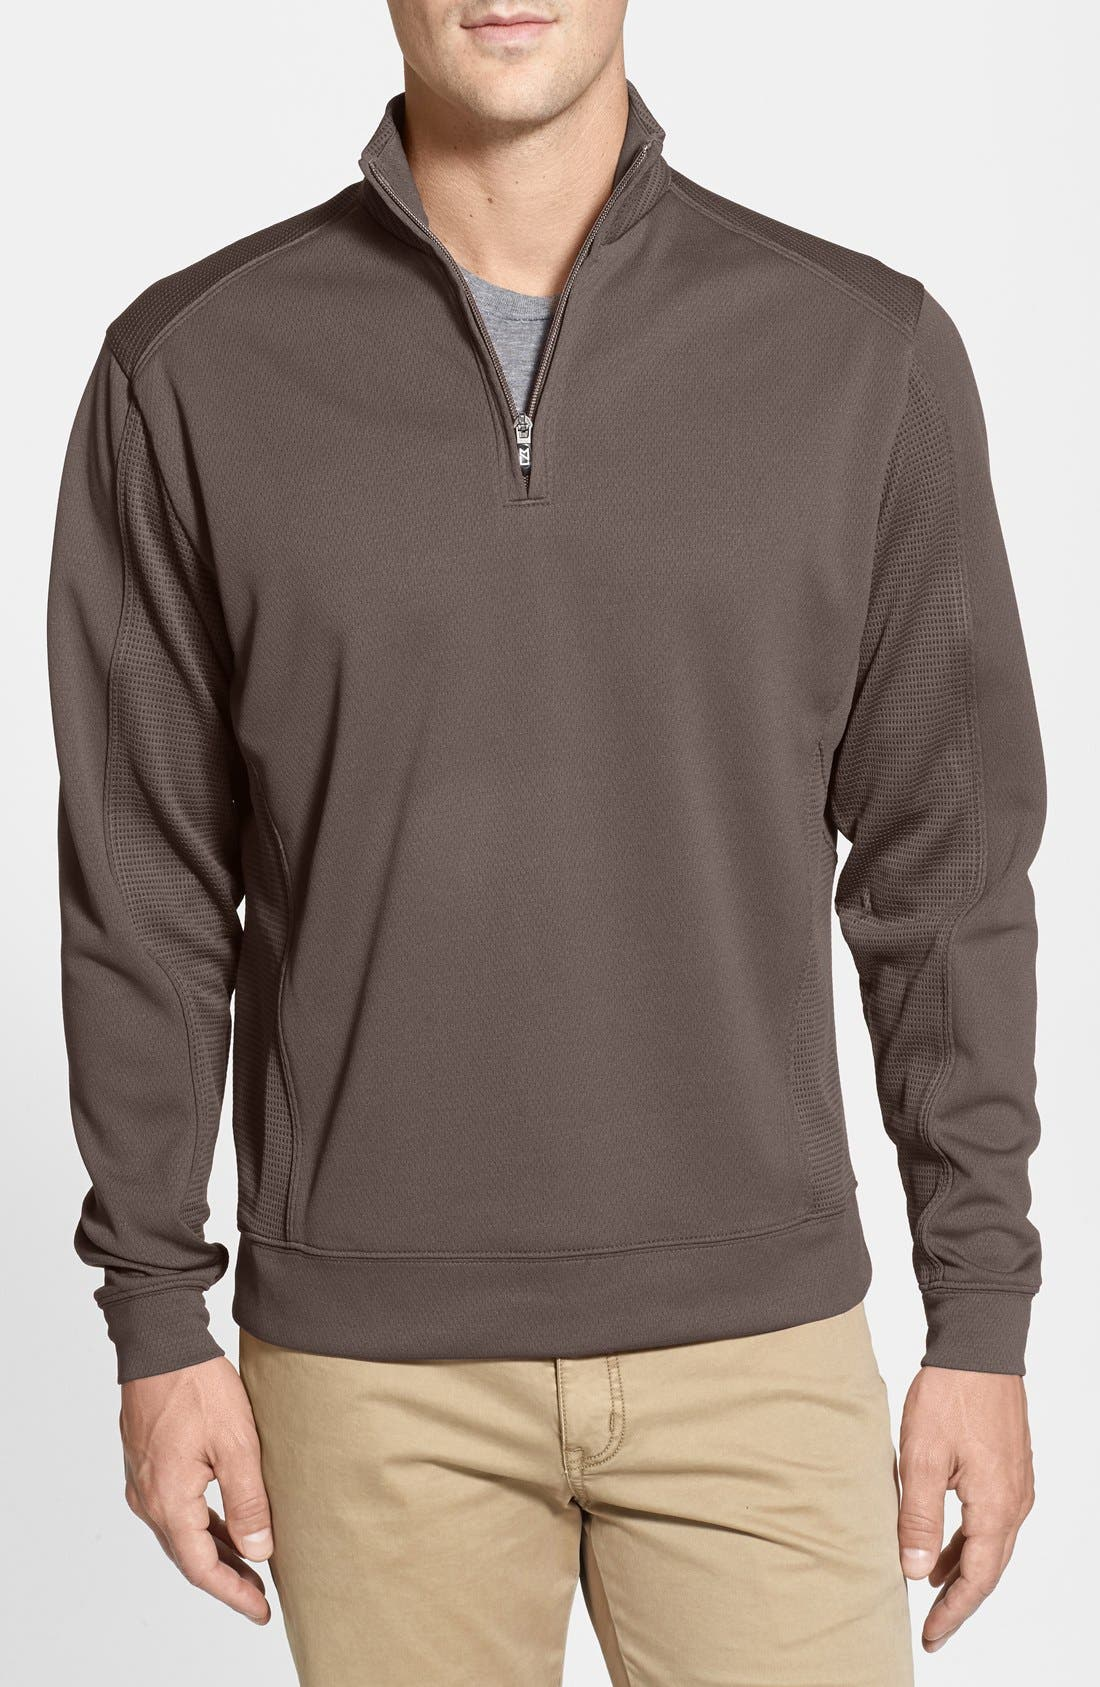 Alternate Image 1 Selected - Cutter & Buck DryTec Half Zip Pullover